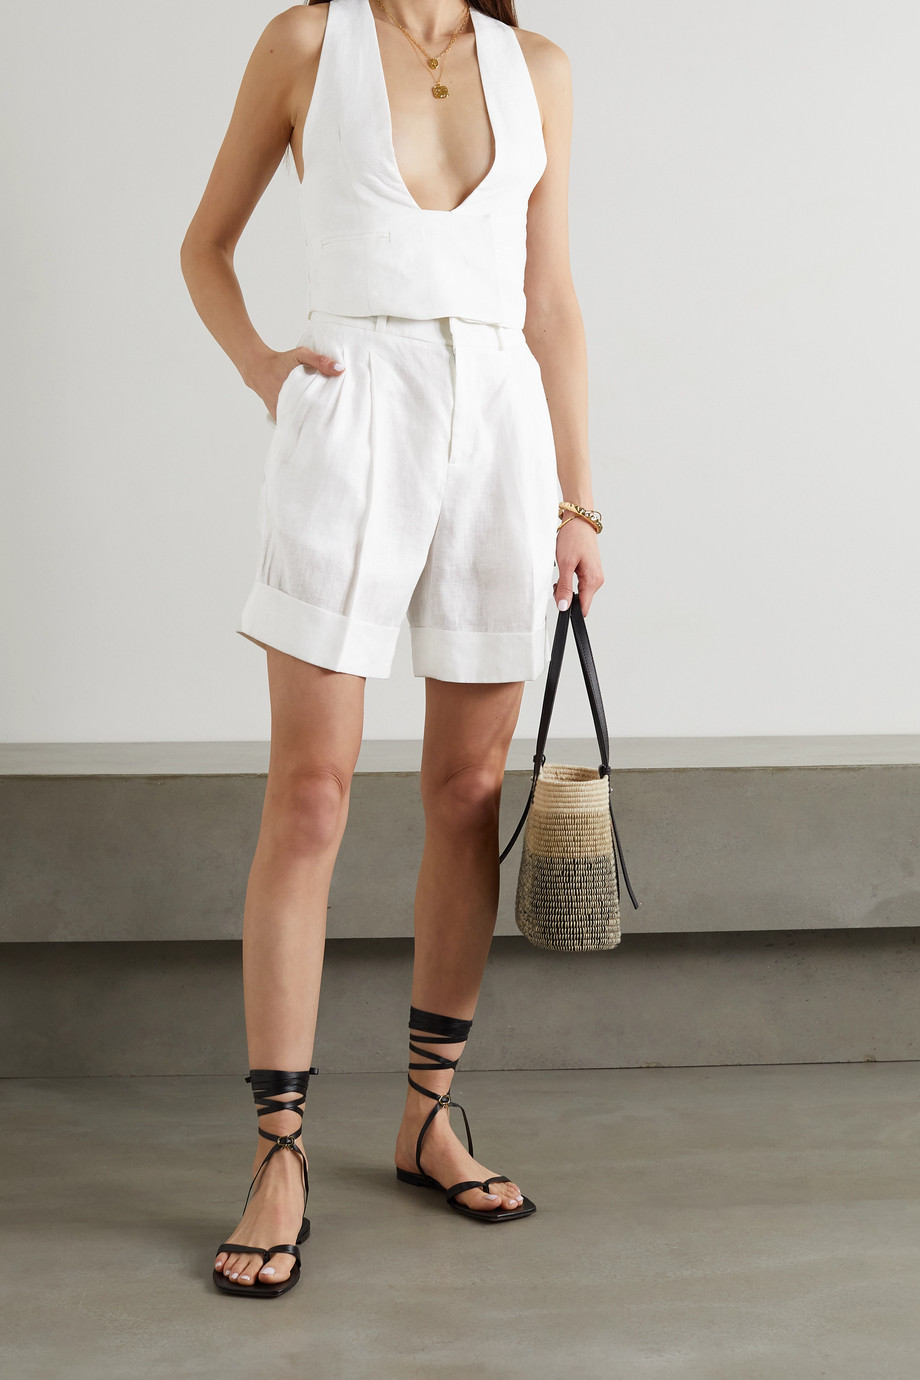 ÀCHEVAL PAMPA + NET SUSTAIN Gardel pleated linen shorts